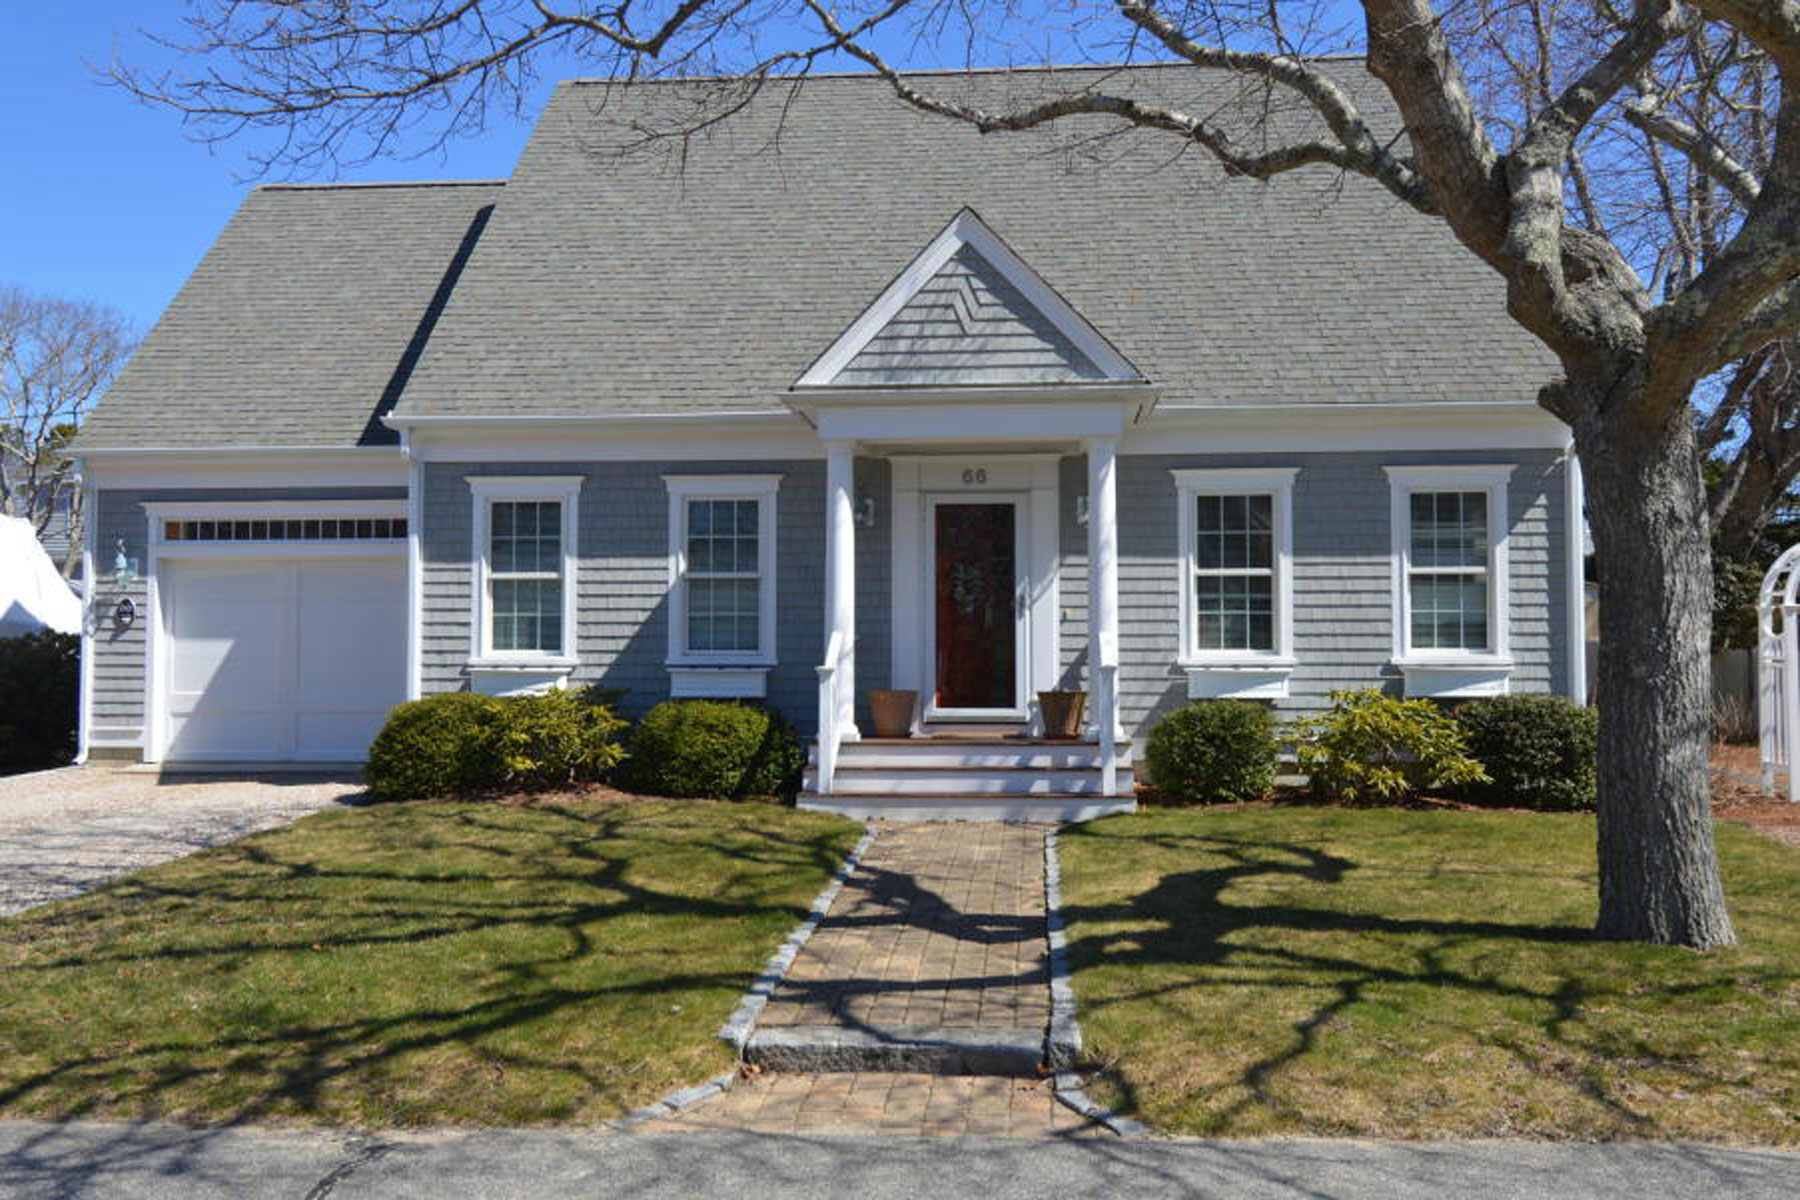 Single Family Home for Active at POPPONESSET BEACH - CAPE 66 Nick Trail Popponesset, Massachusetts 02649 United States